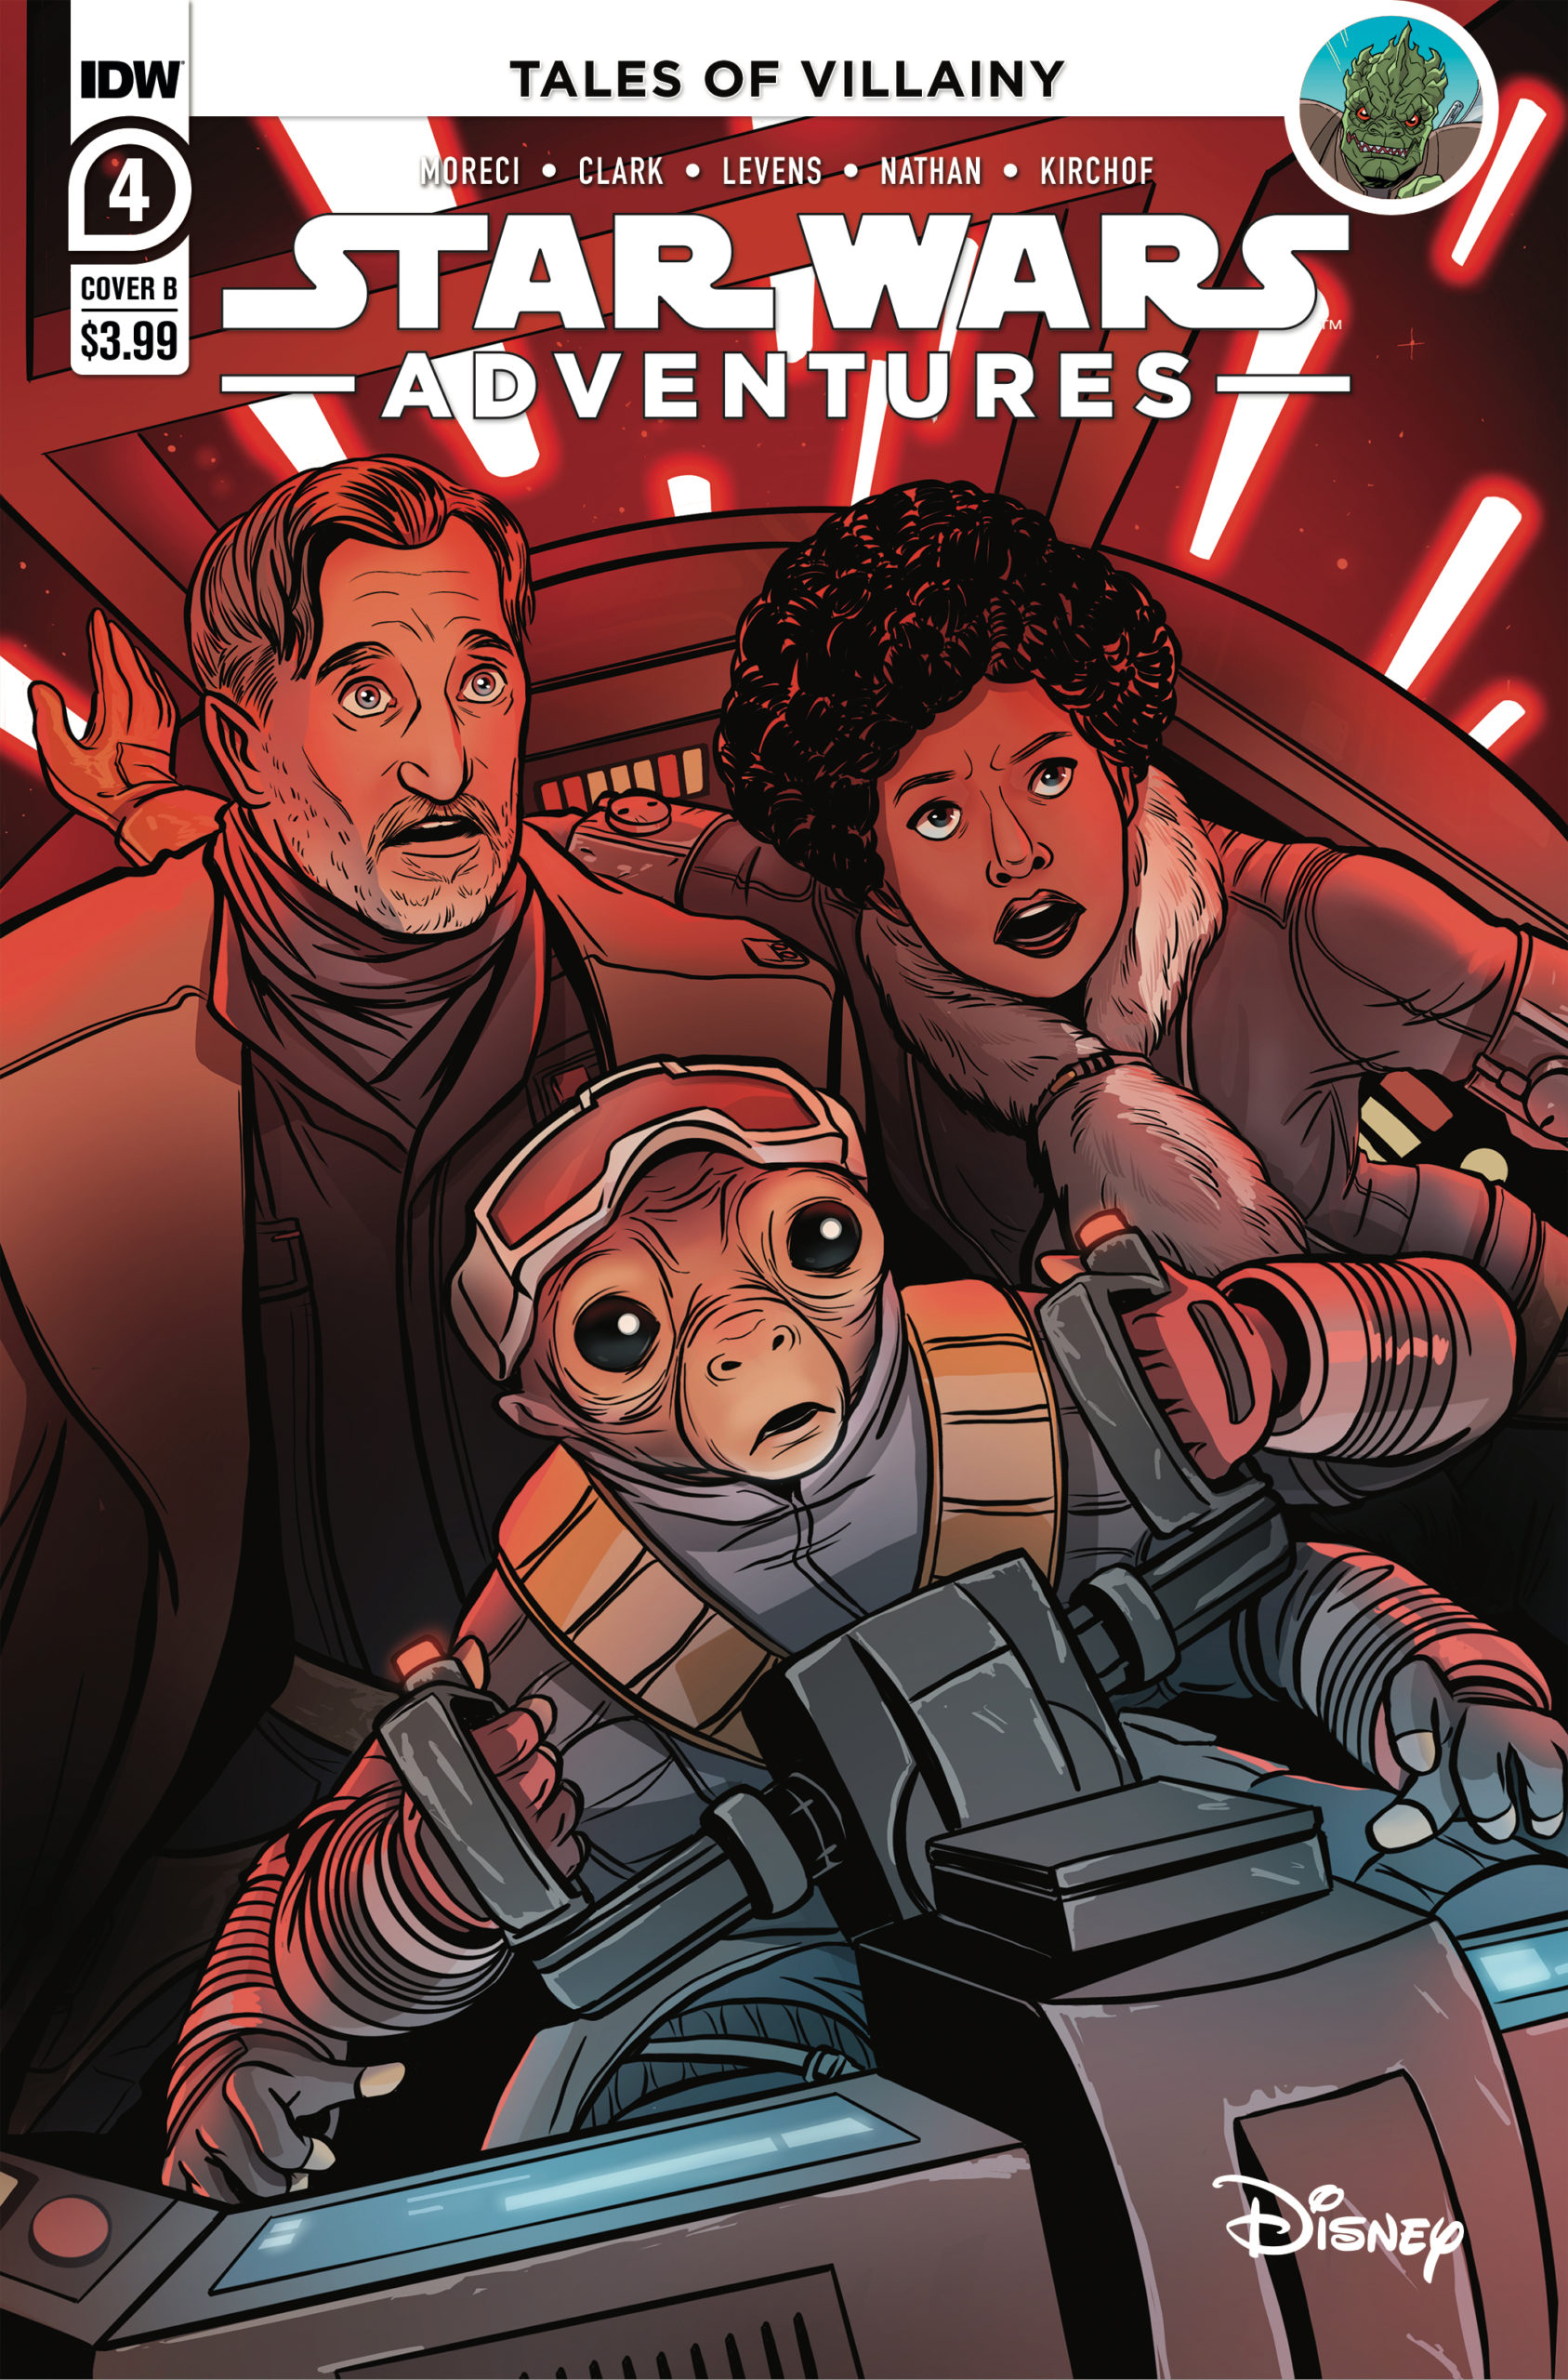 Star Wars Adventures #4 (Cover B by Yael Nathan) (17.03.2021)